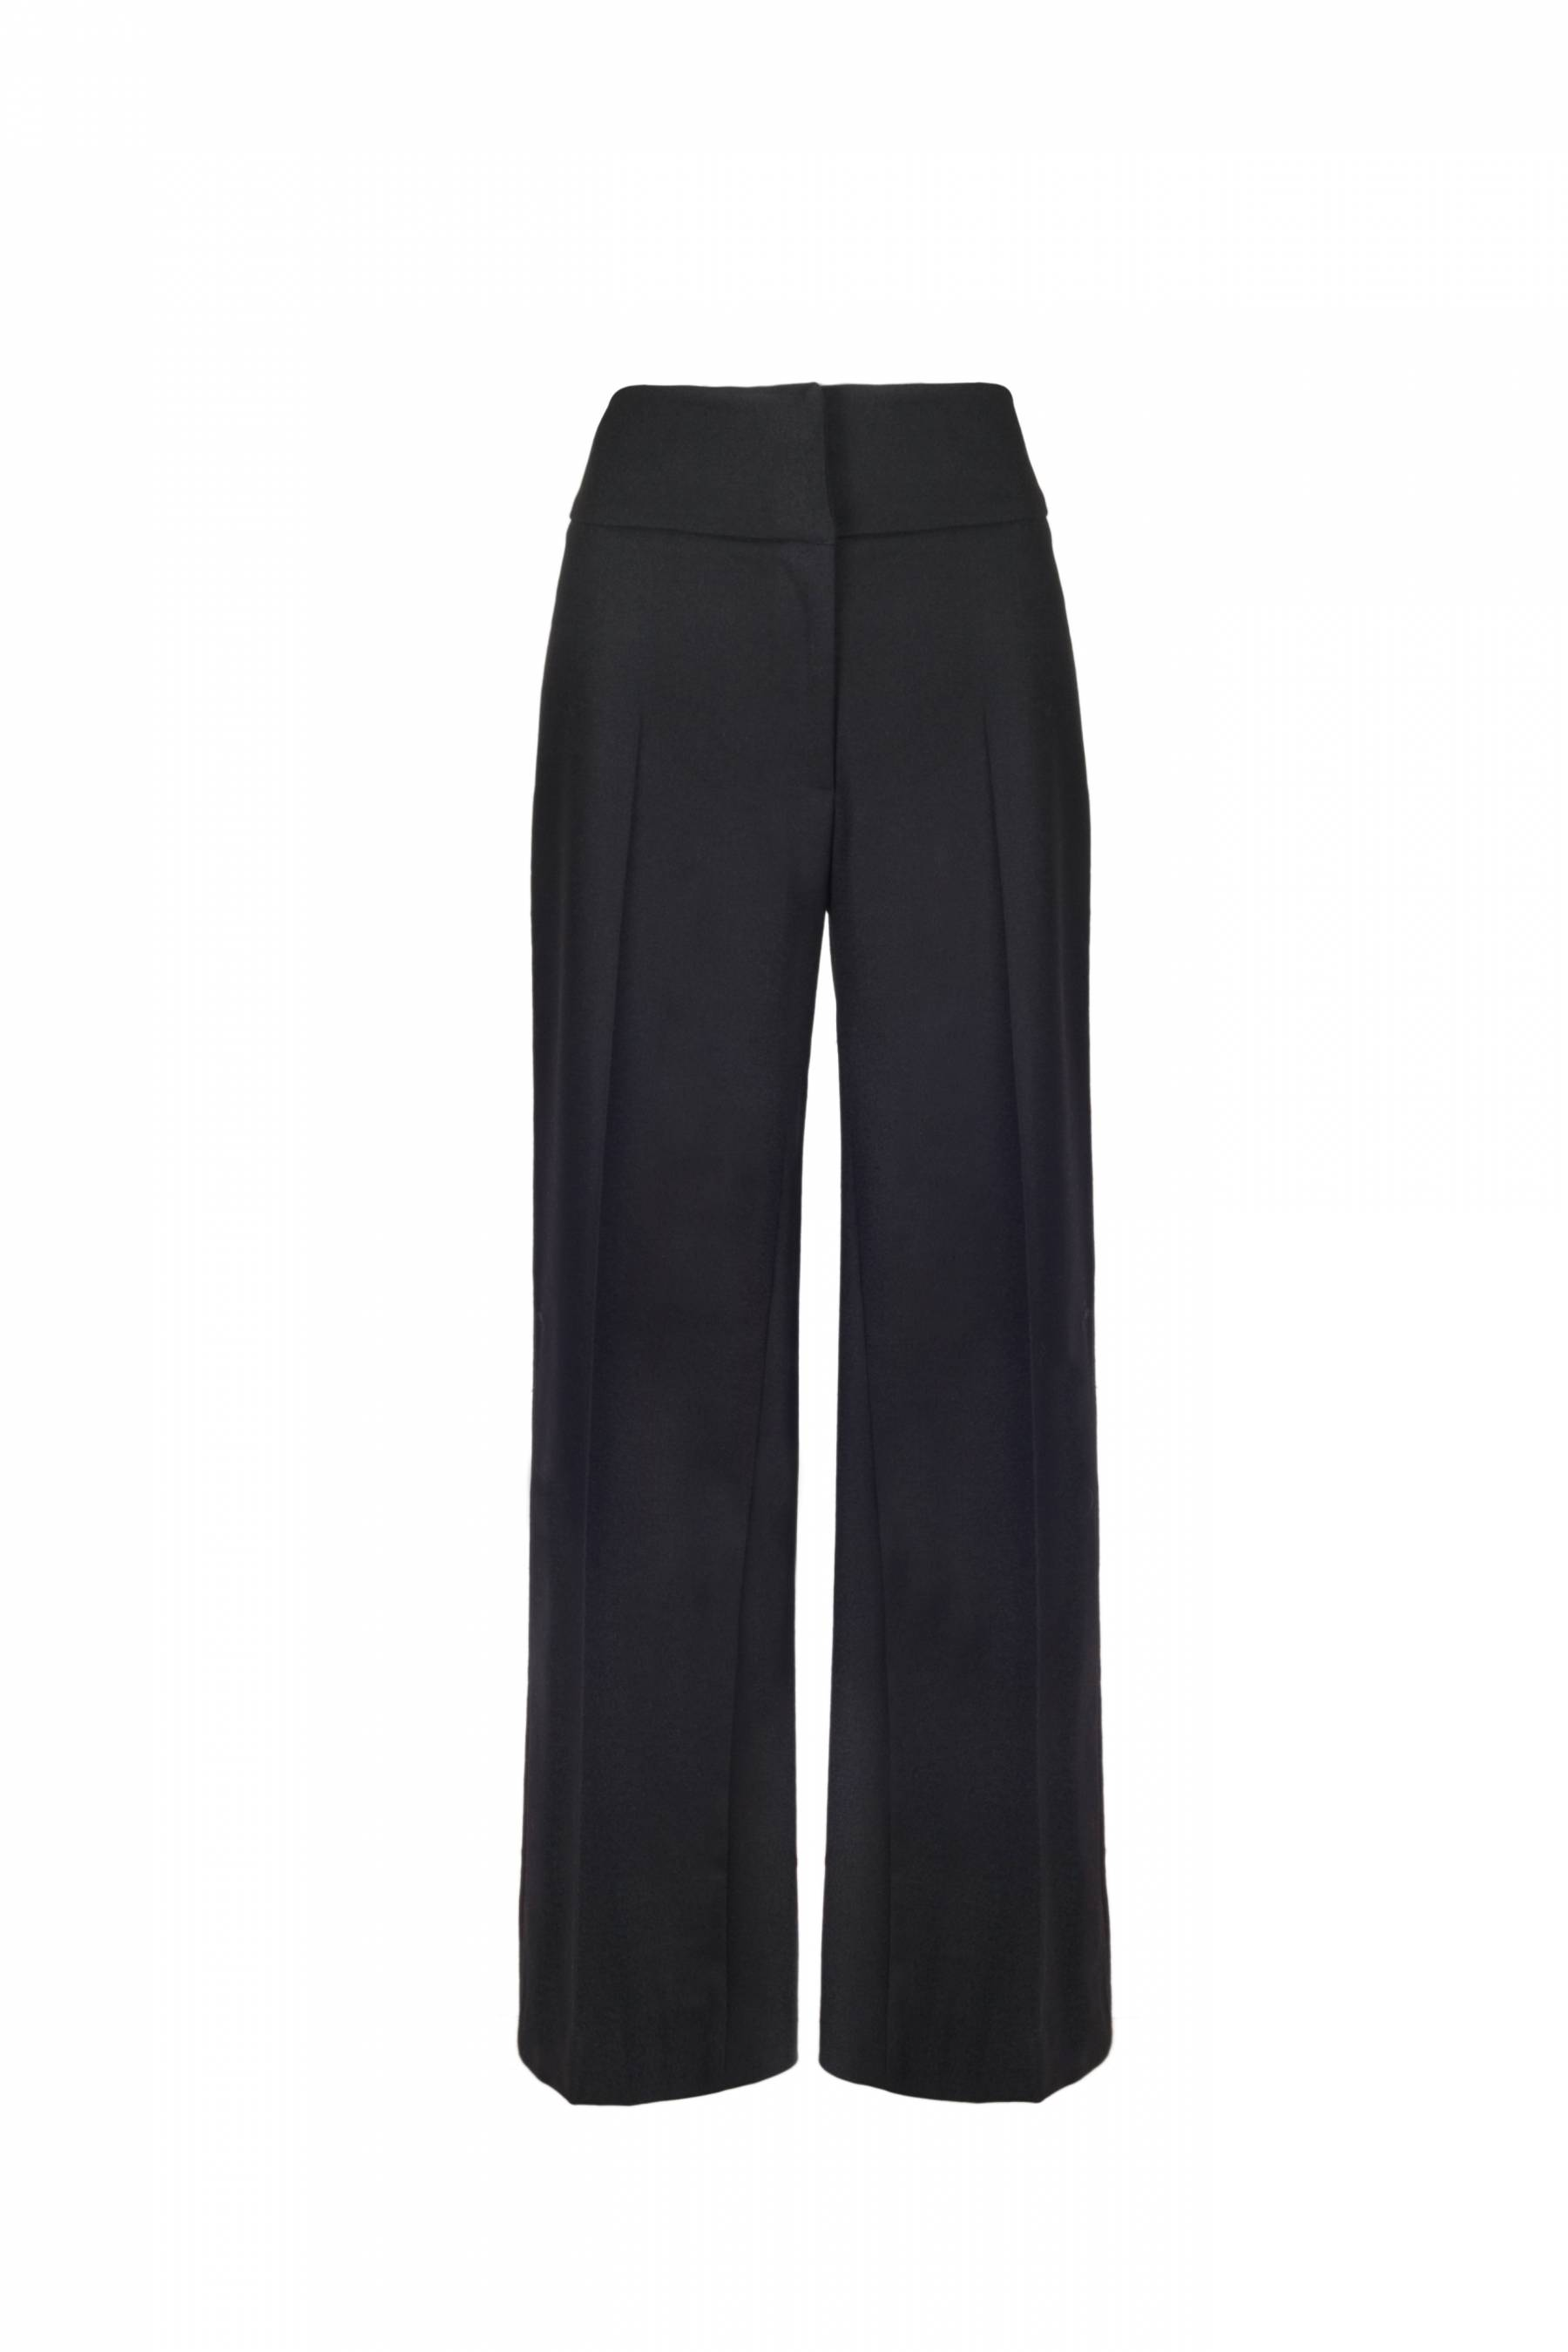 High Waisted Wide Leg Trouser.